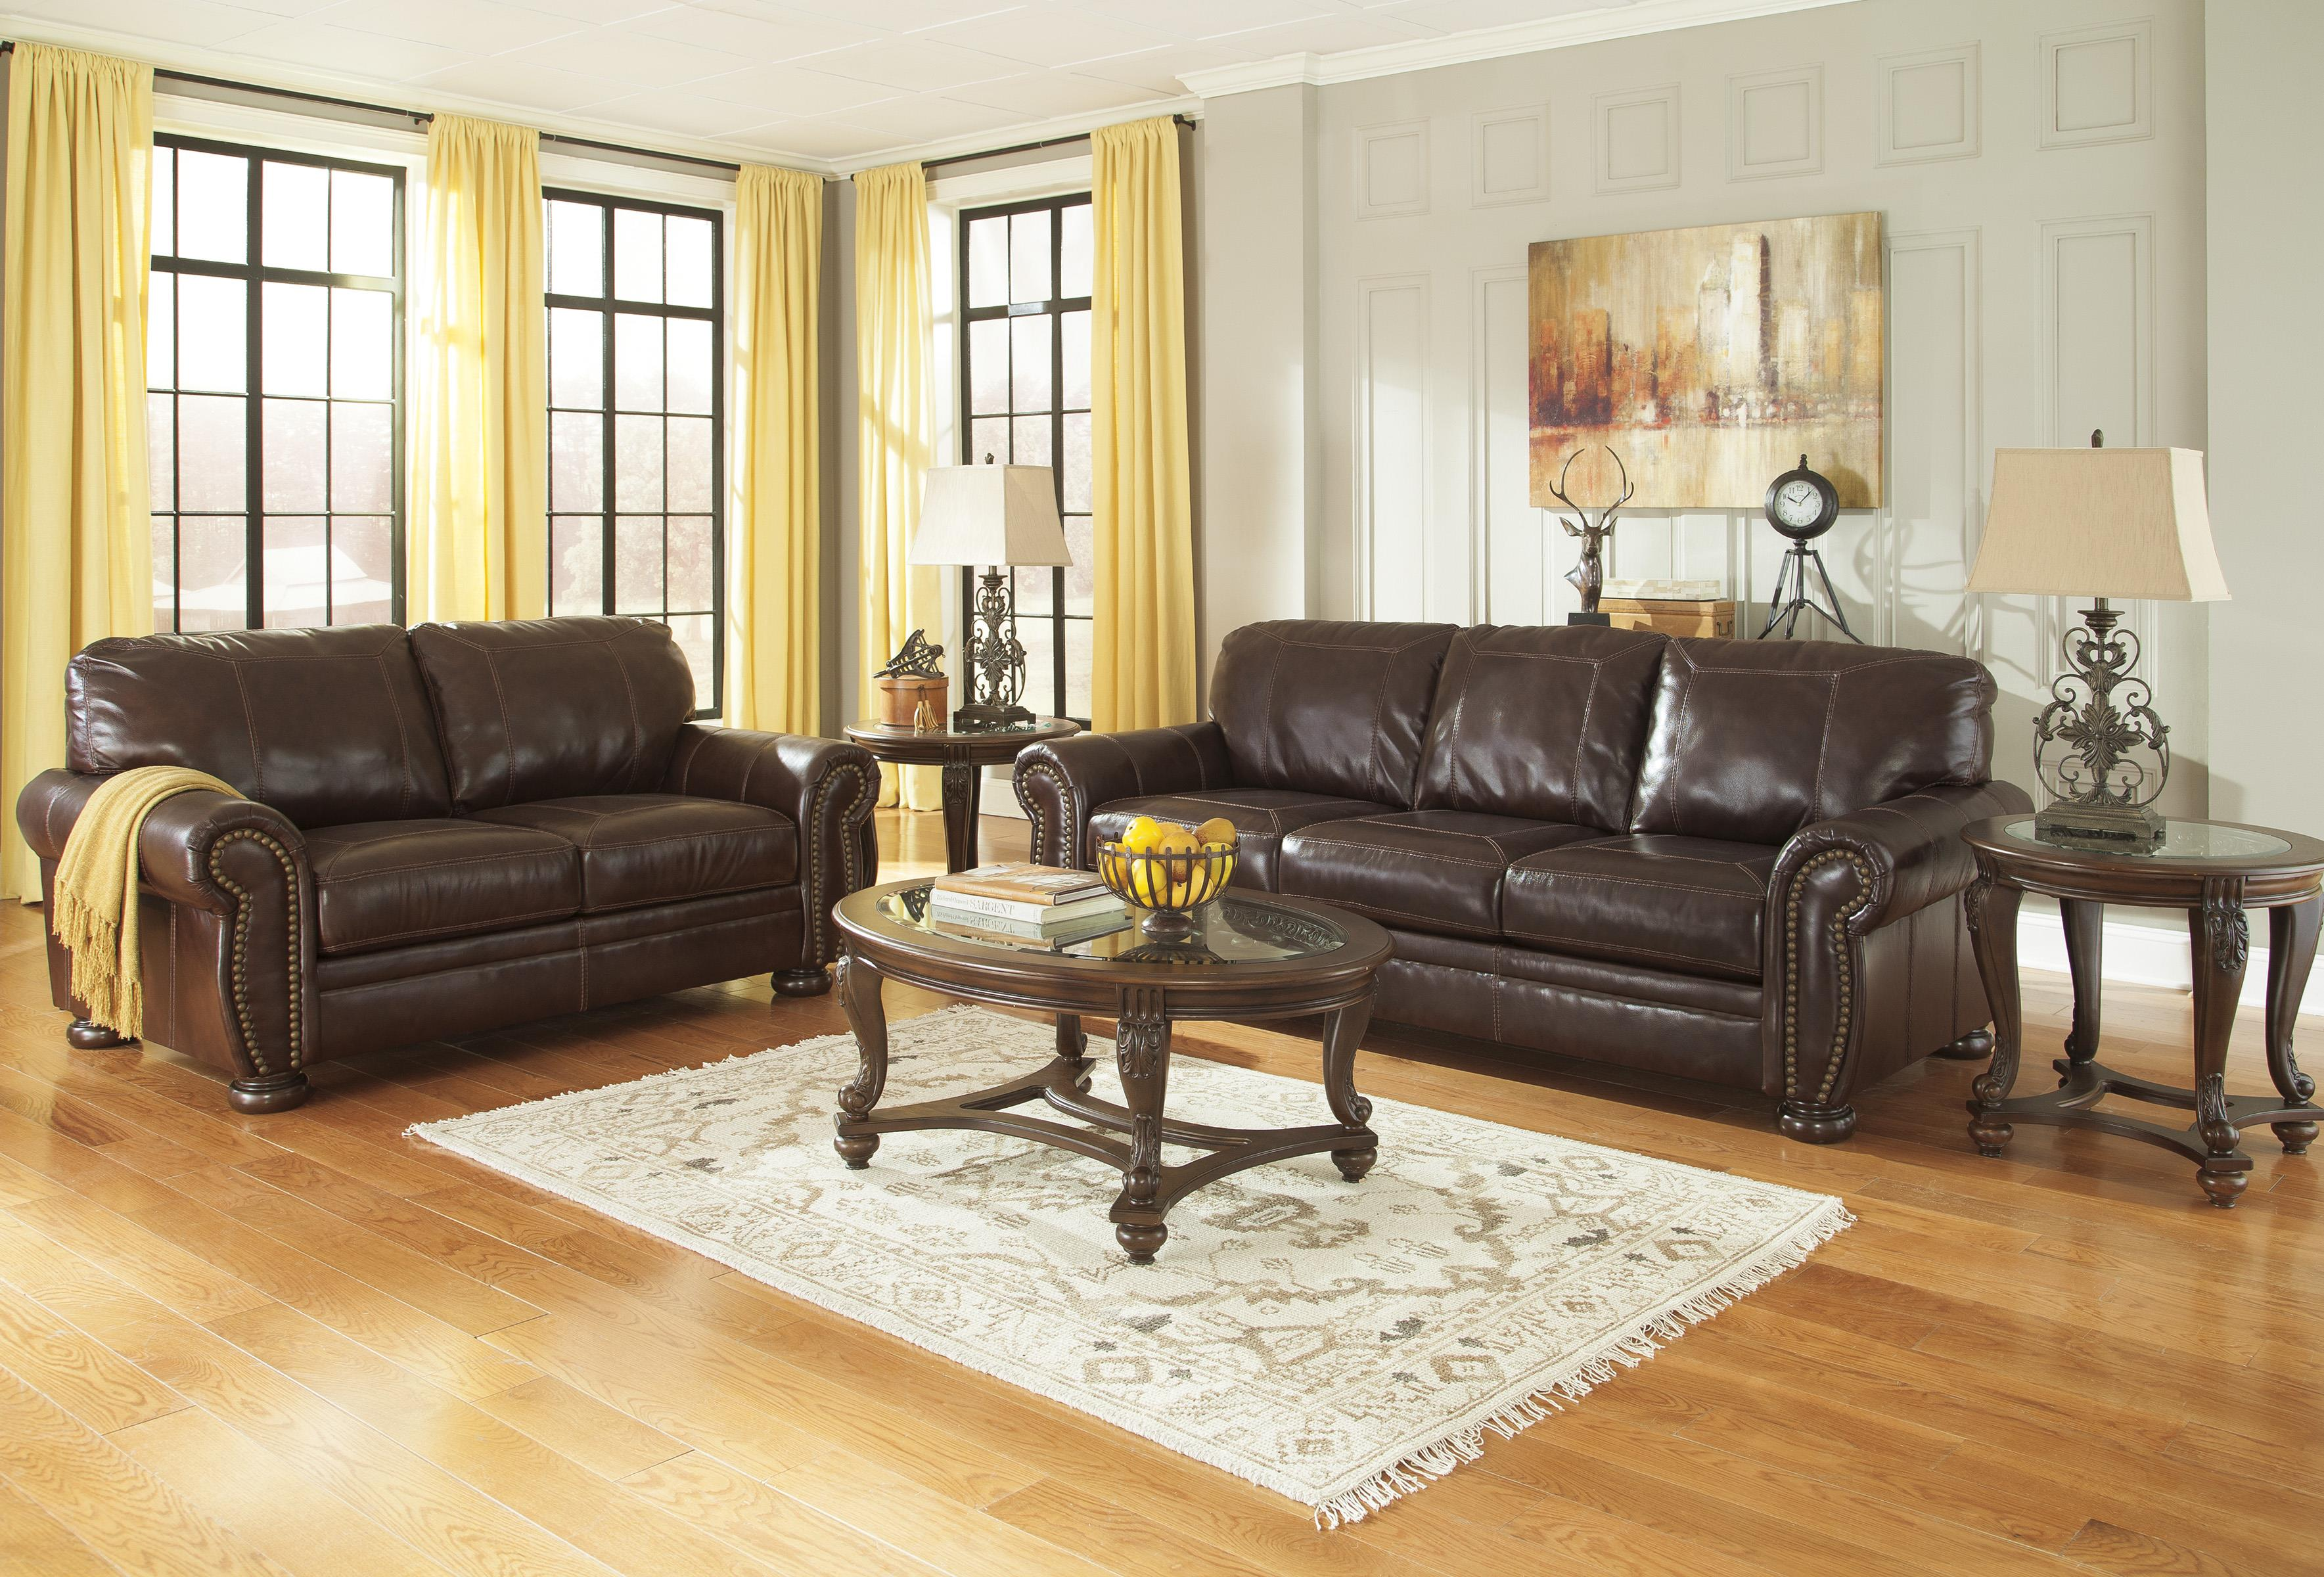 Traditional Leather Match Sofa with Rolled Arms Nailhead Trim